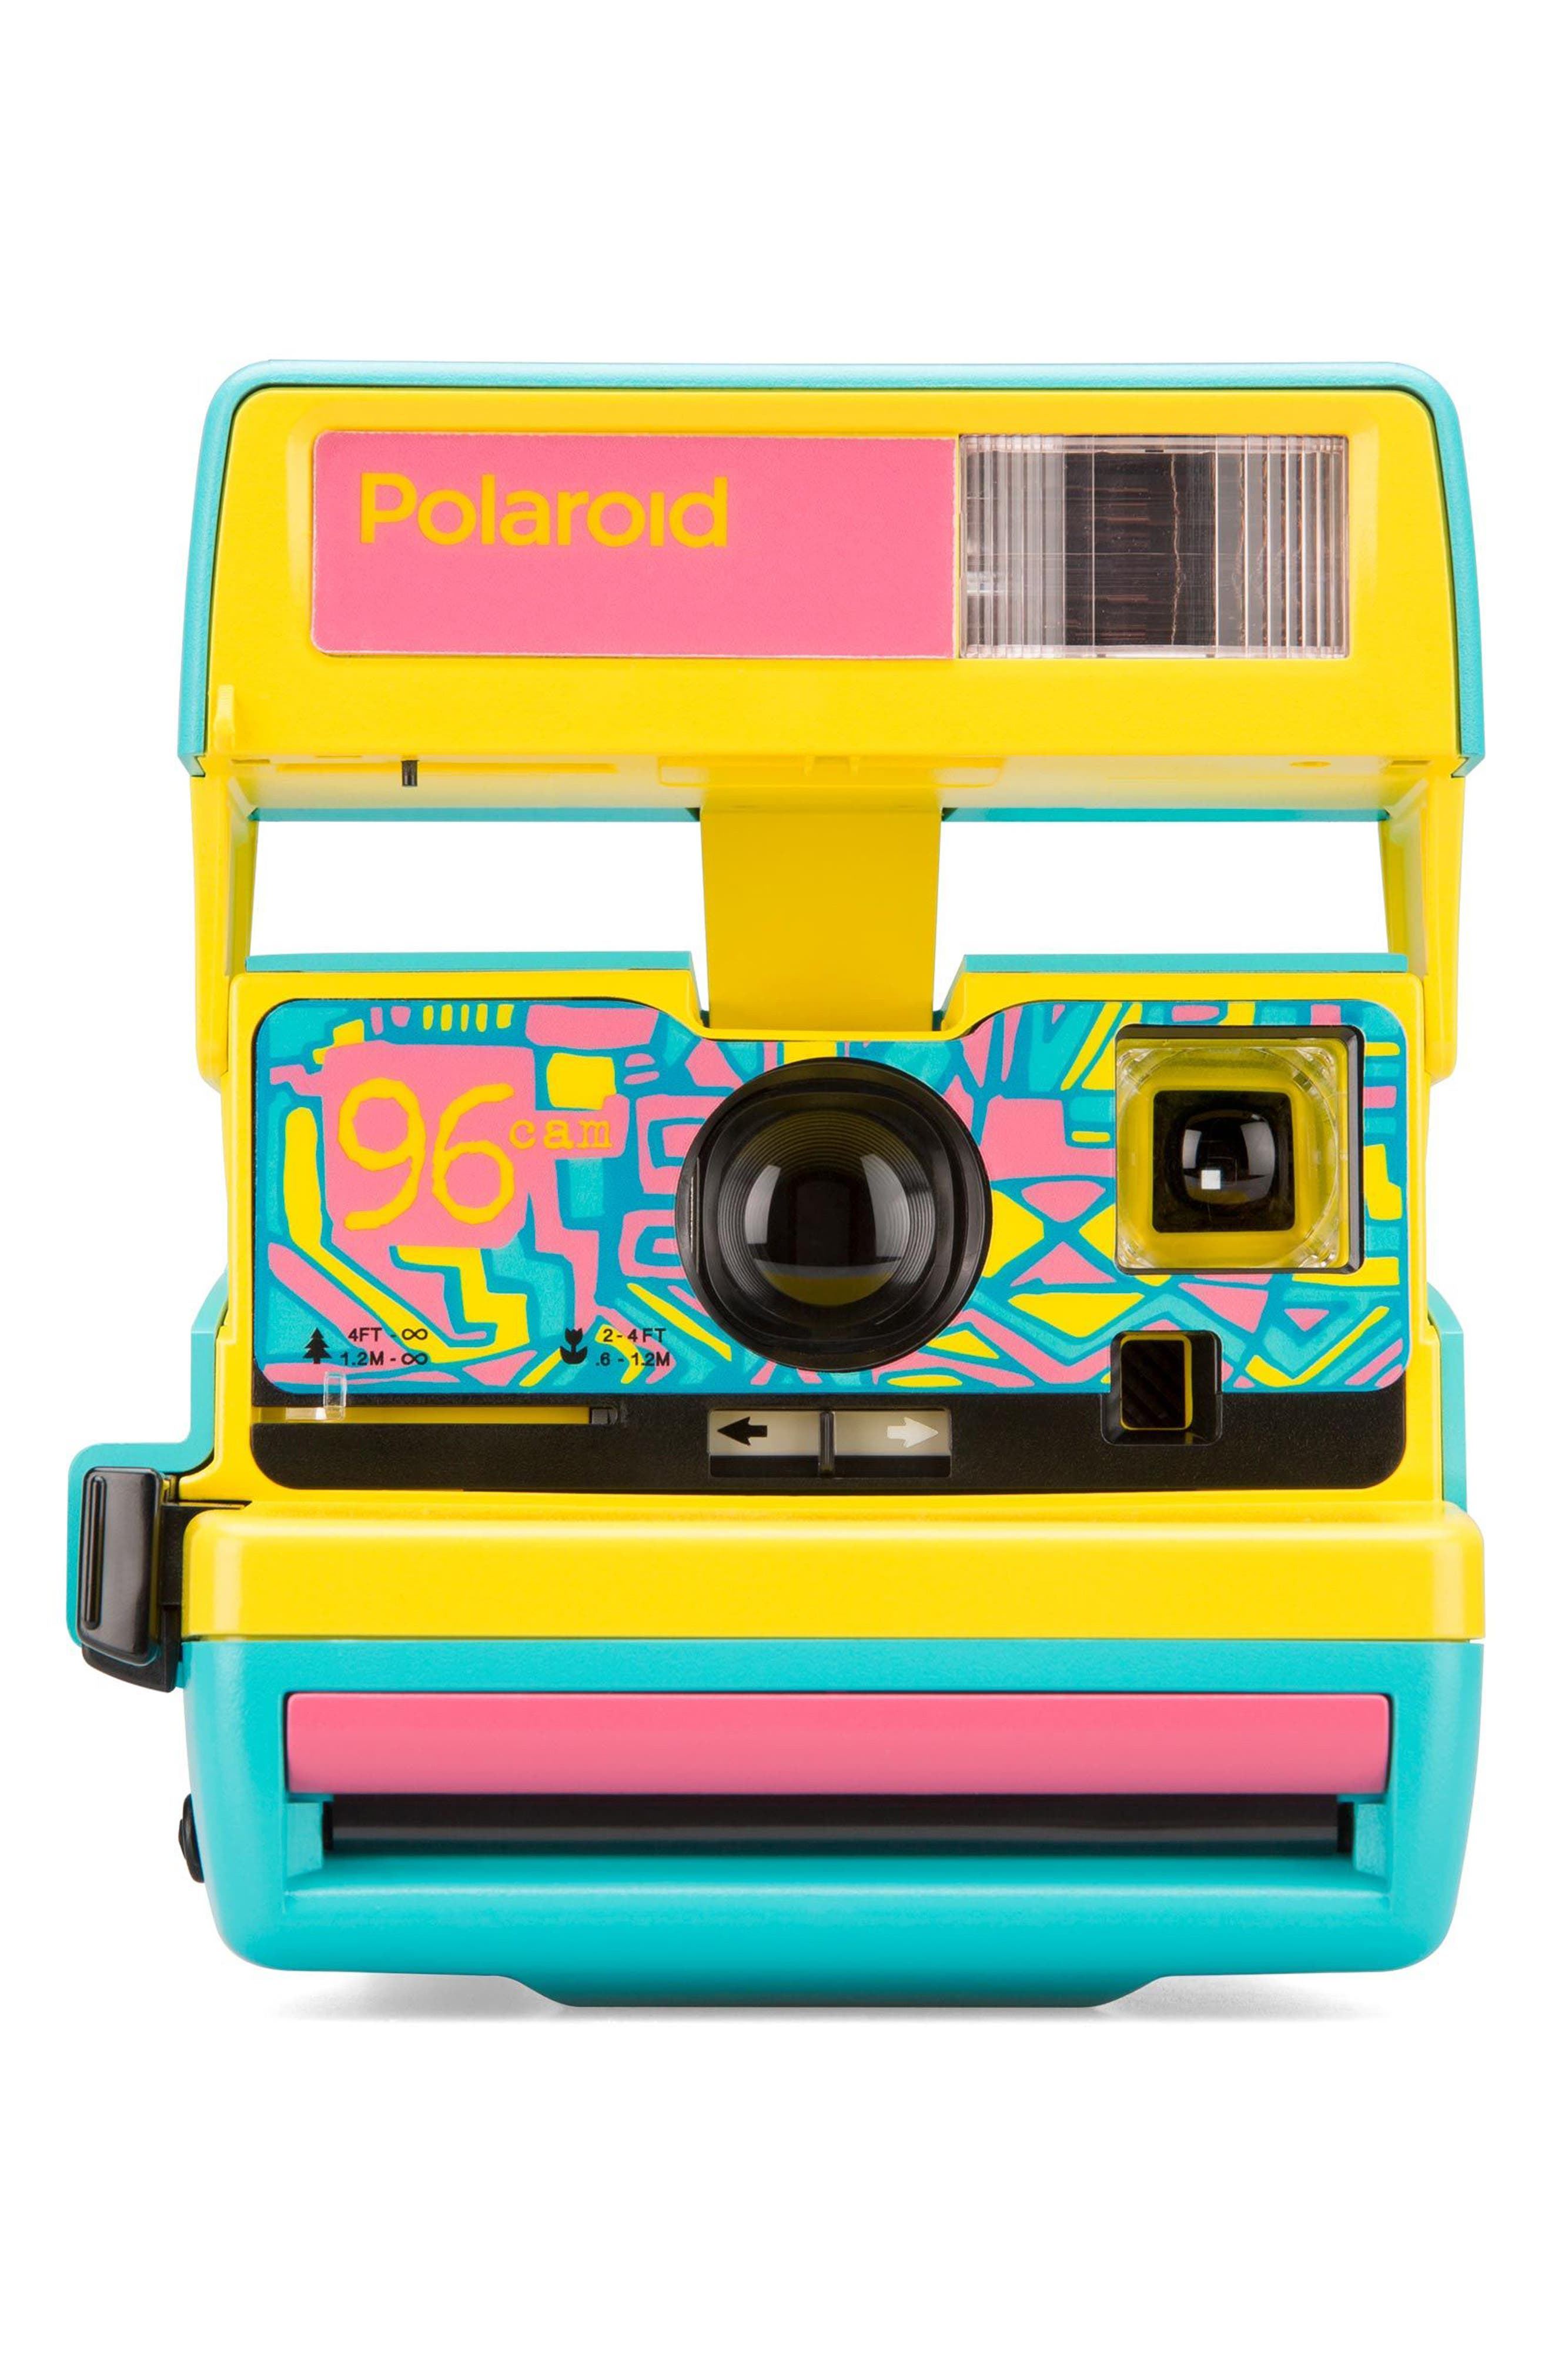 Impossible Project Polaroid 600 96 Cam Instant Camera,                             Main thumbnail 1, color,                             Blue